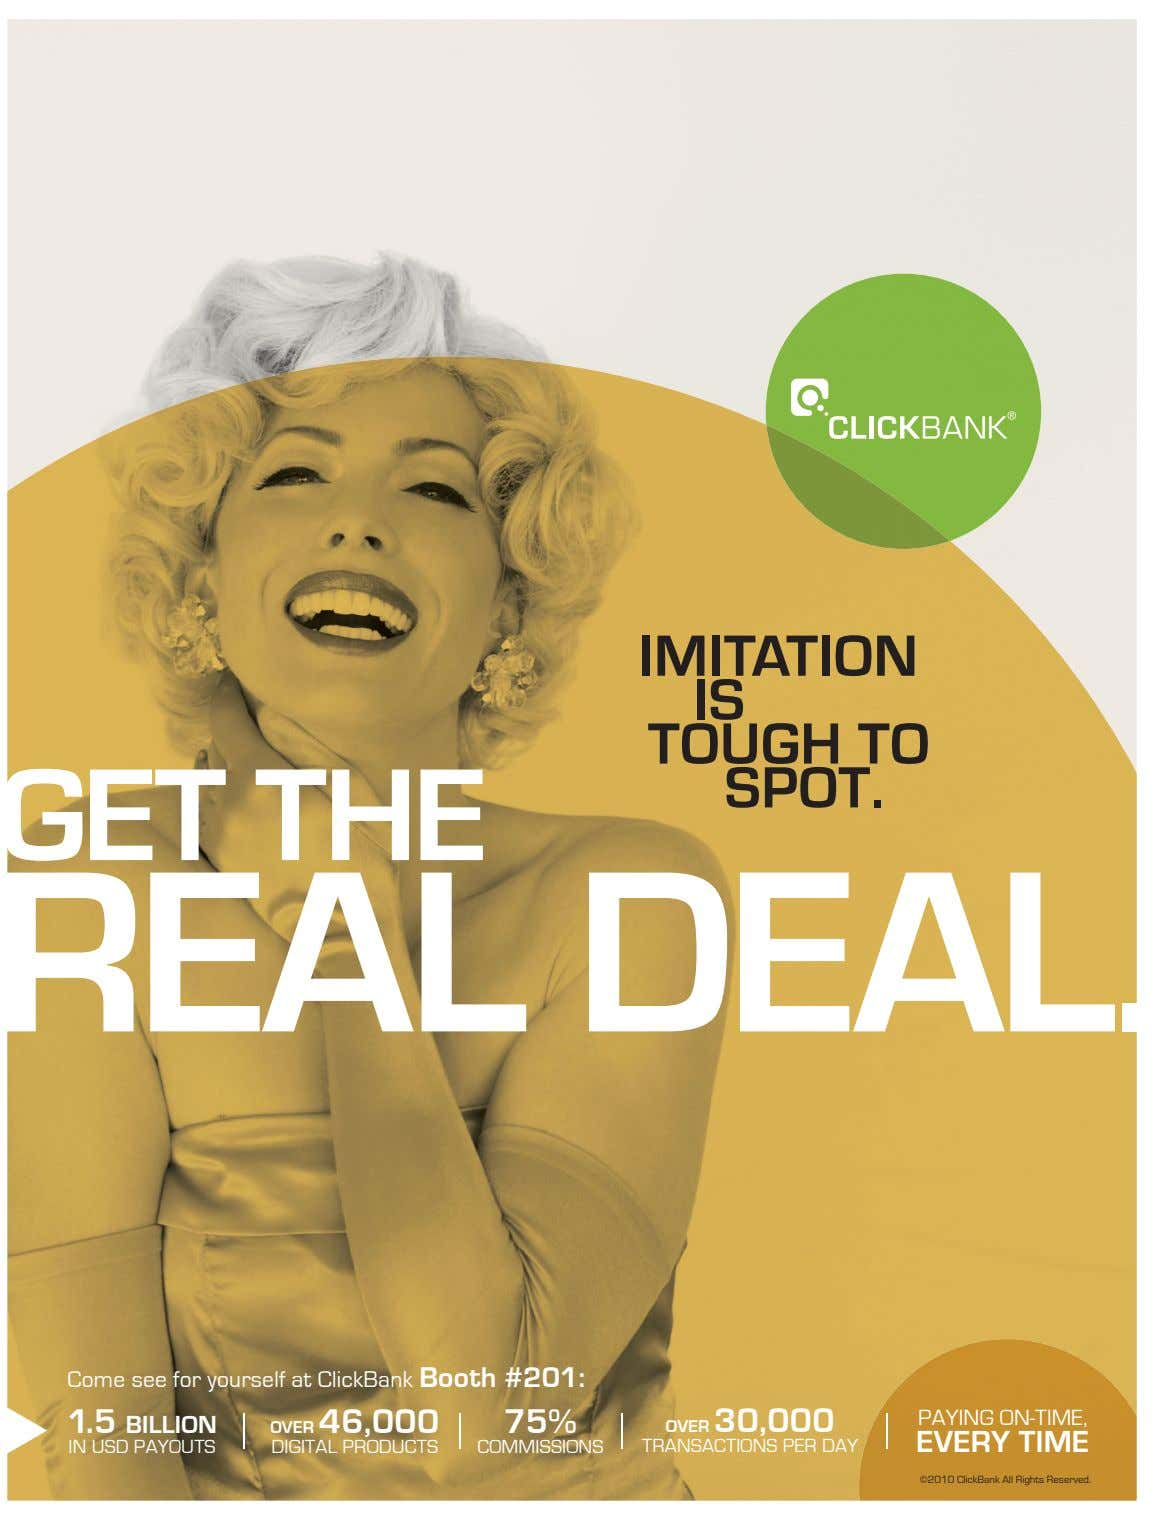 GET THE IMITATION IS TOUGH TO SPOT. REAL DEAL. Come see for yourself at ClickBank